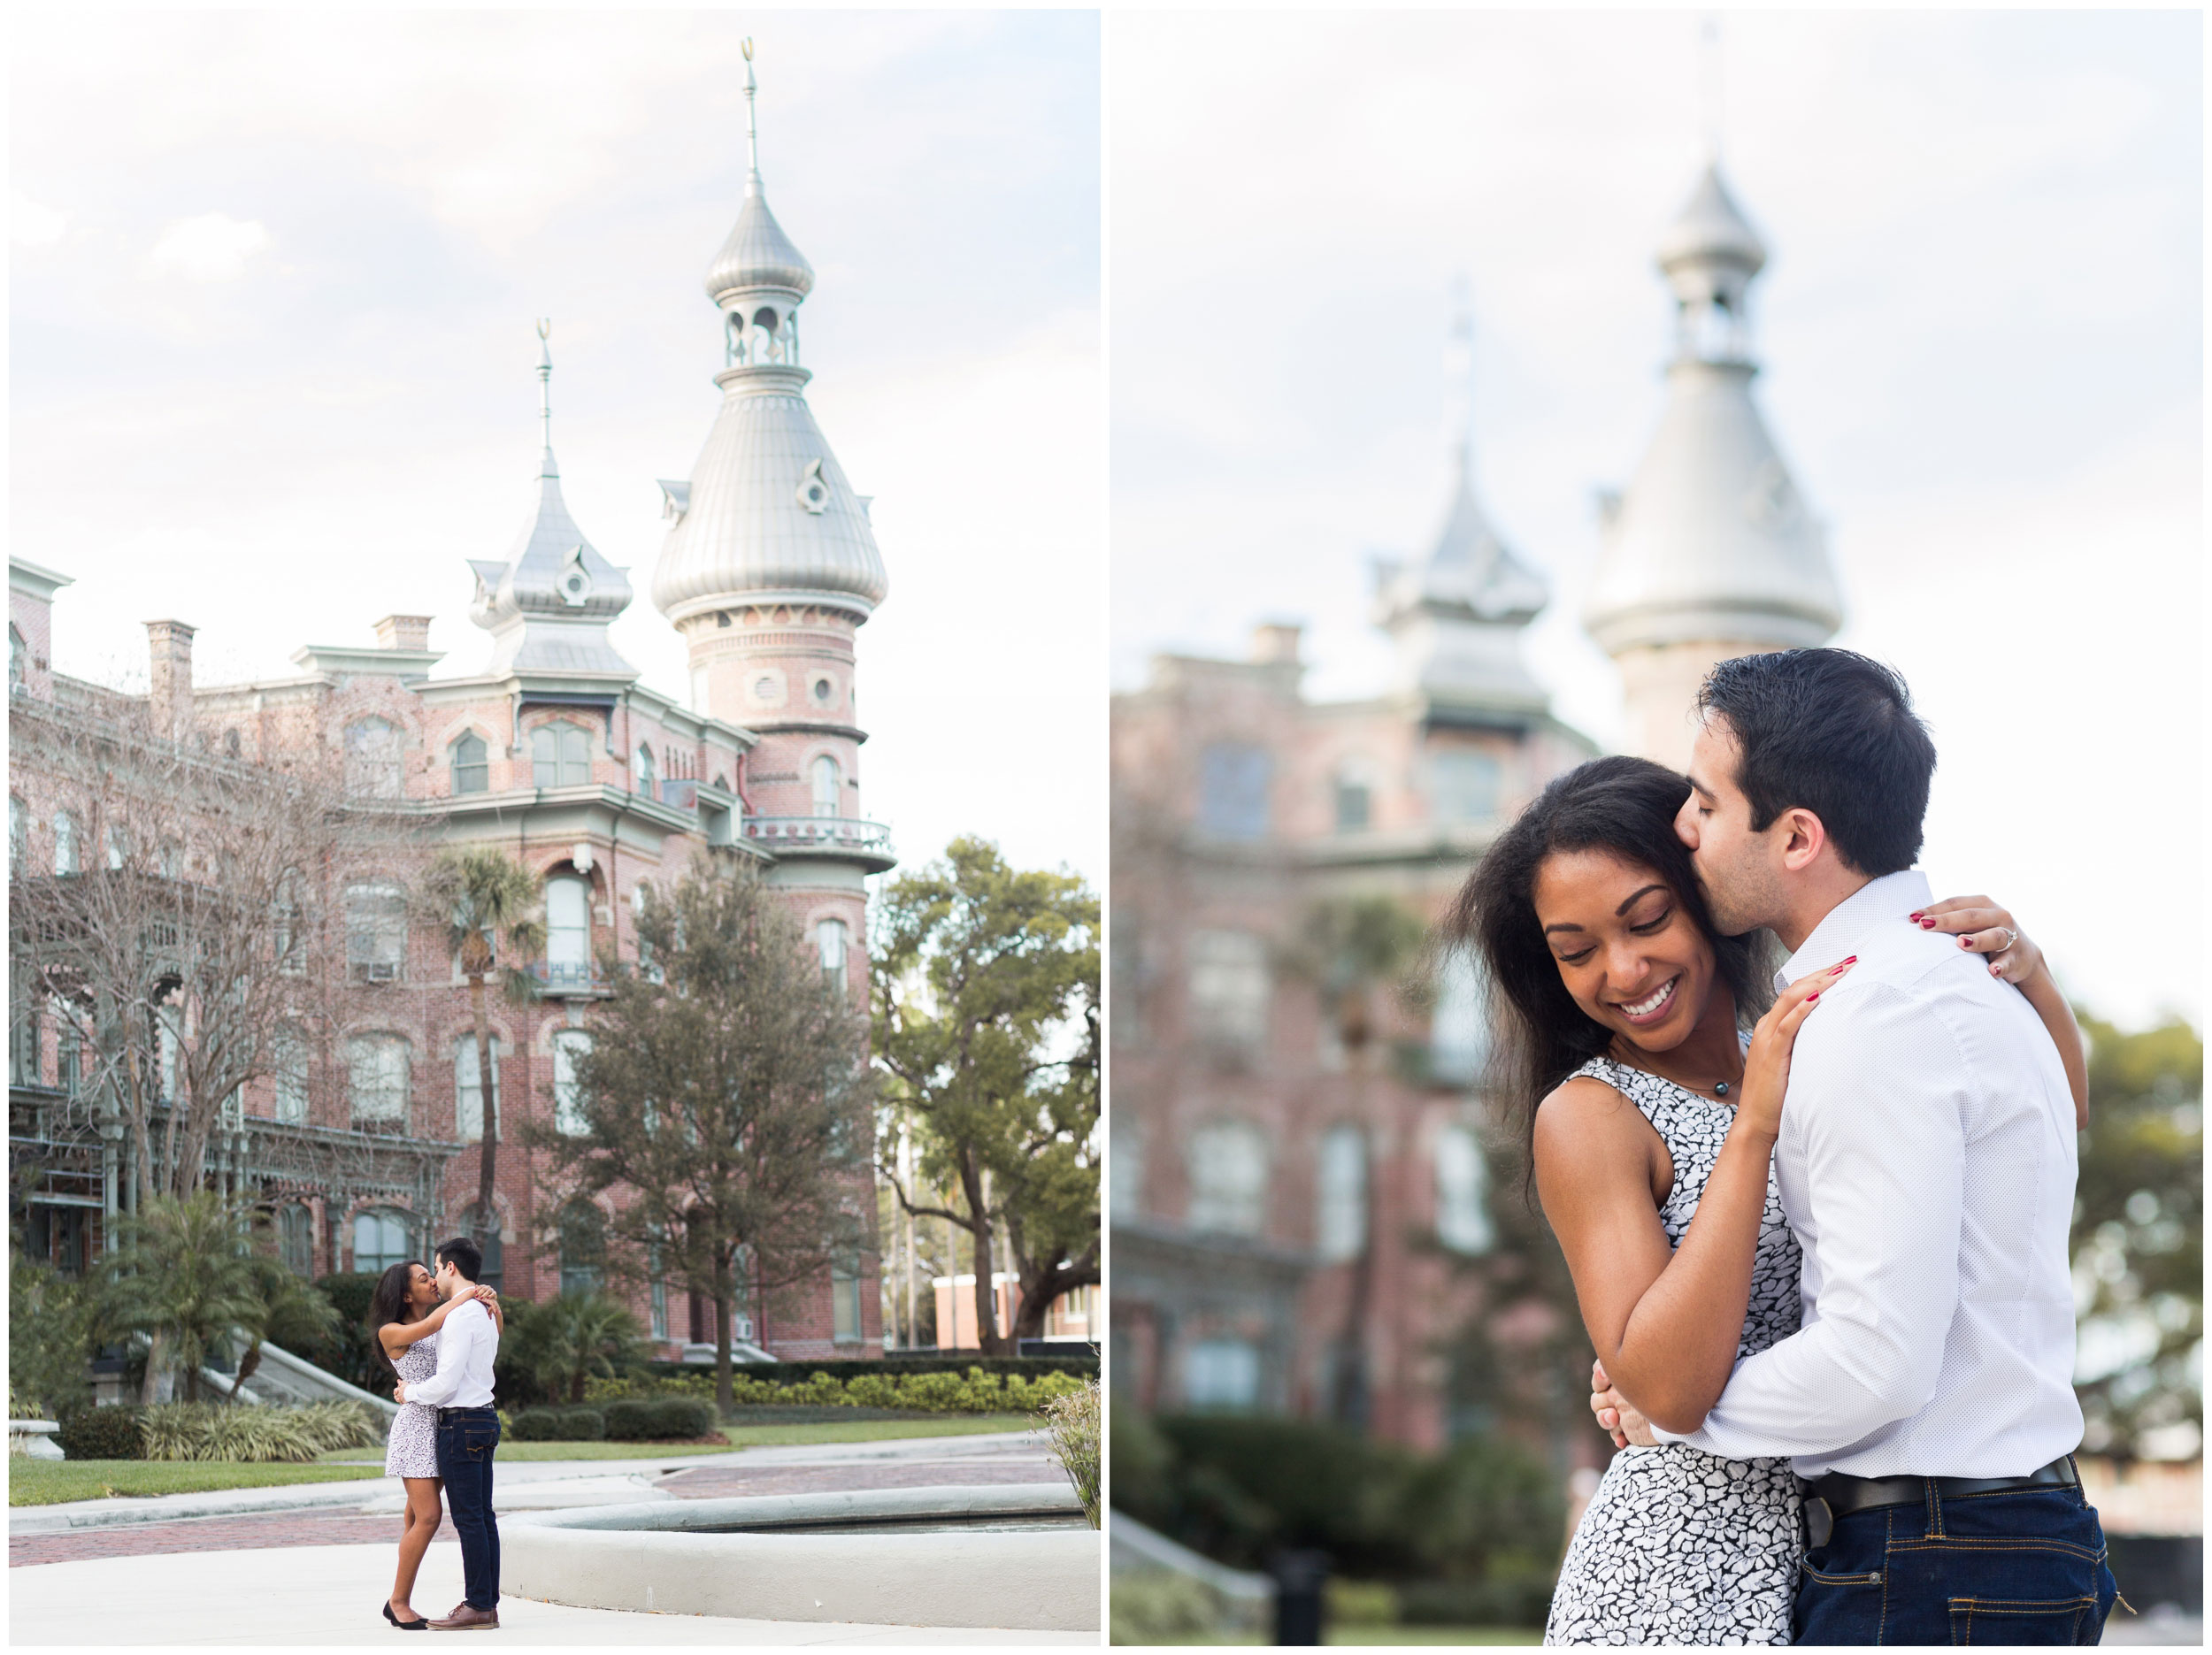 engagement-university-of-tampa-plant-park_0003.jpg